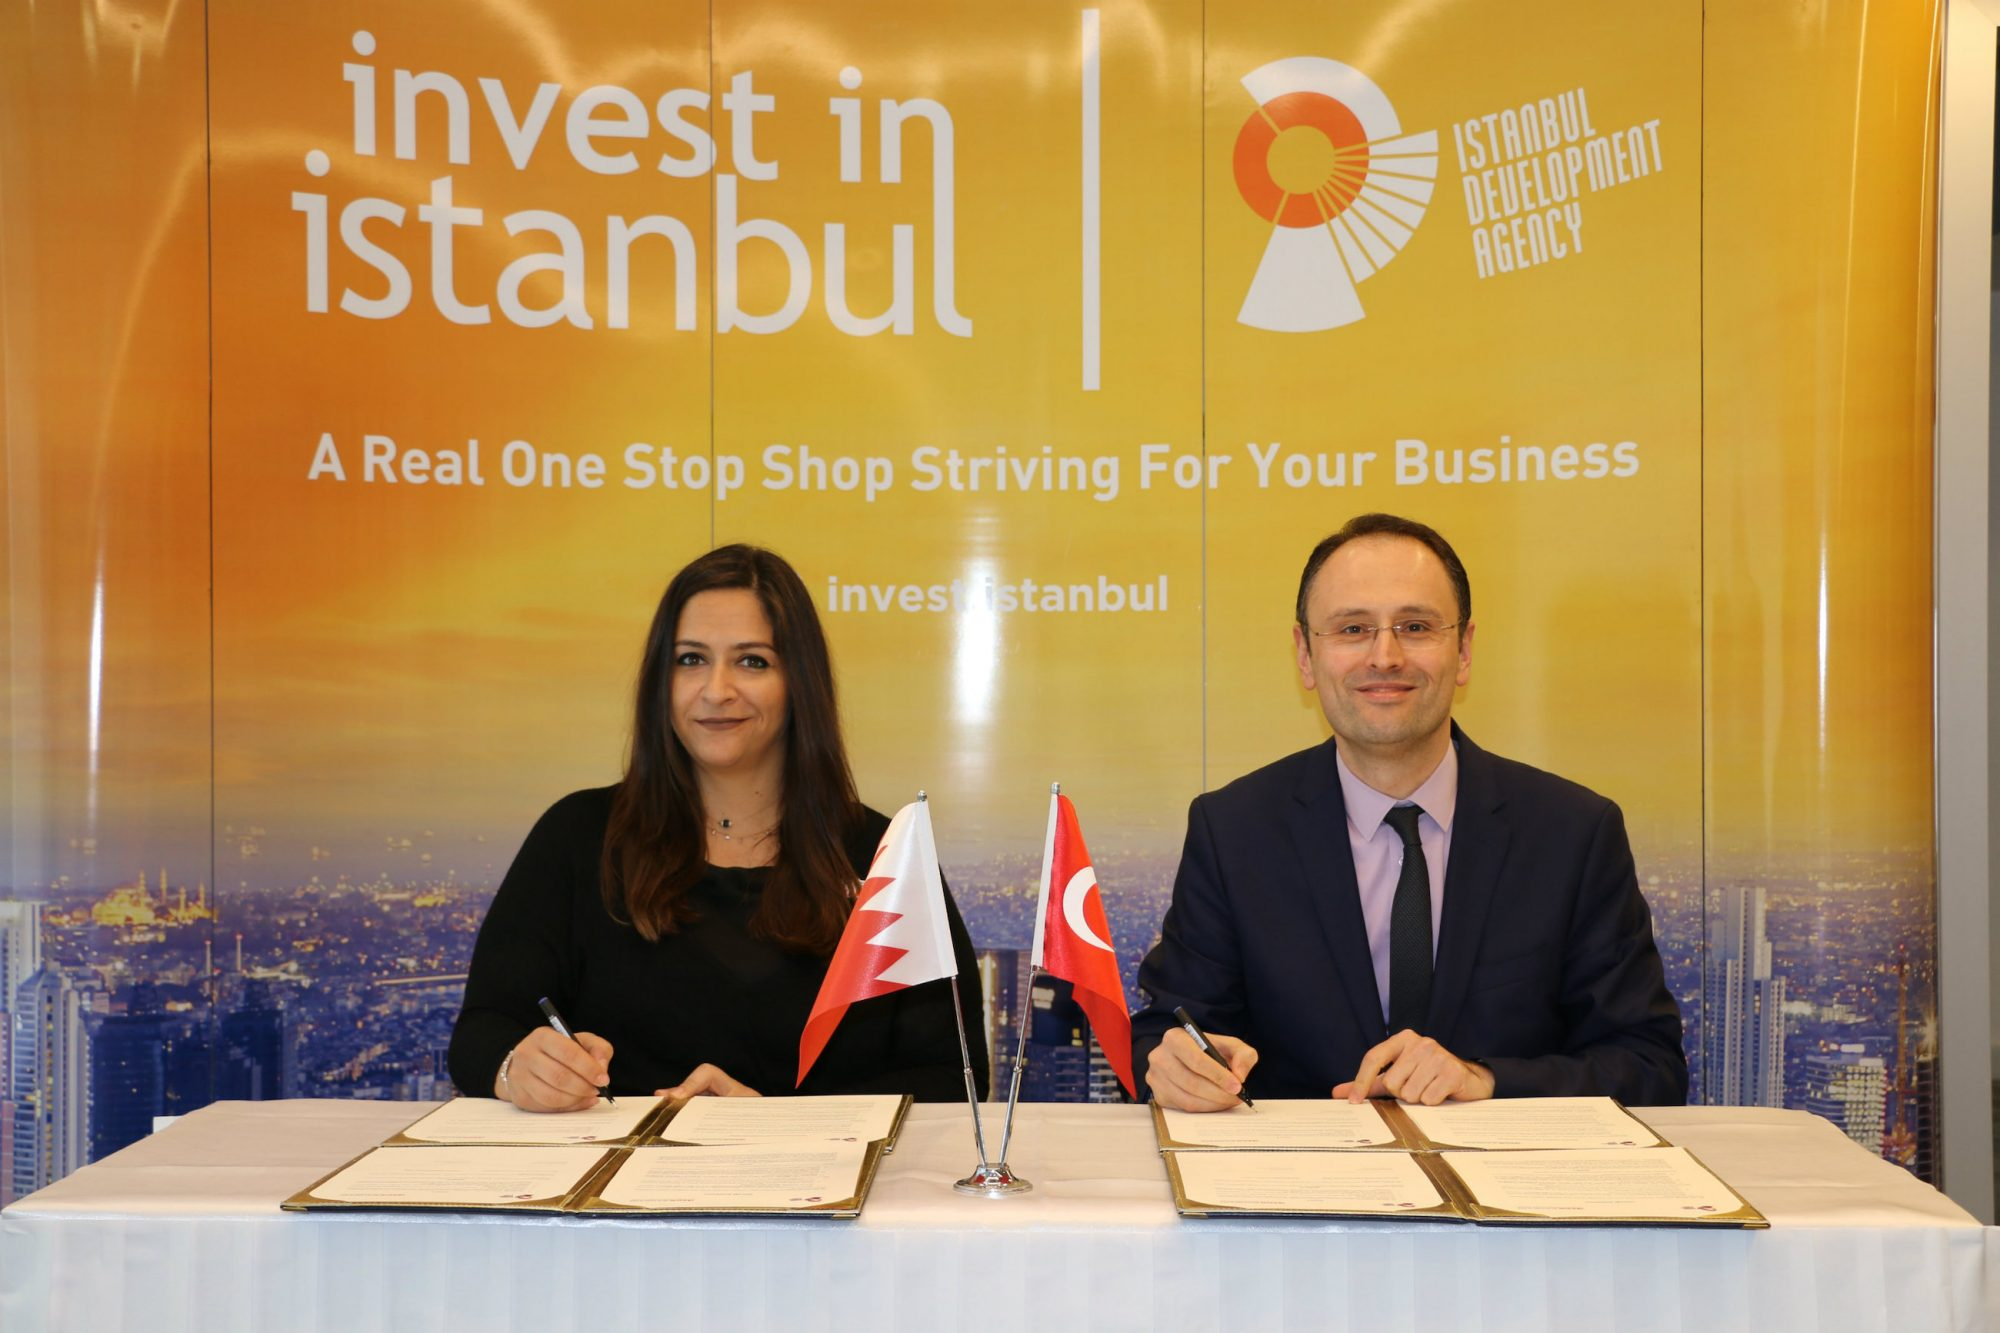 Bahrain and Turkey team up to accelerate the growth of their startup ecosystems